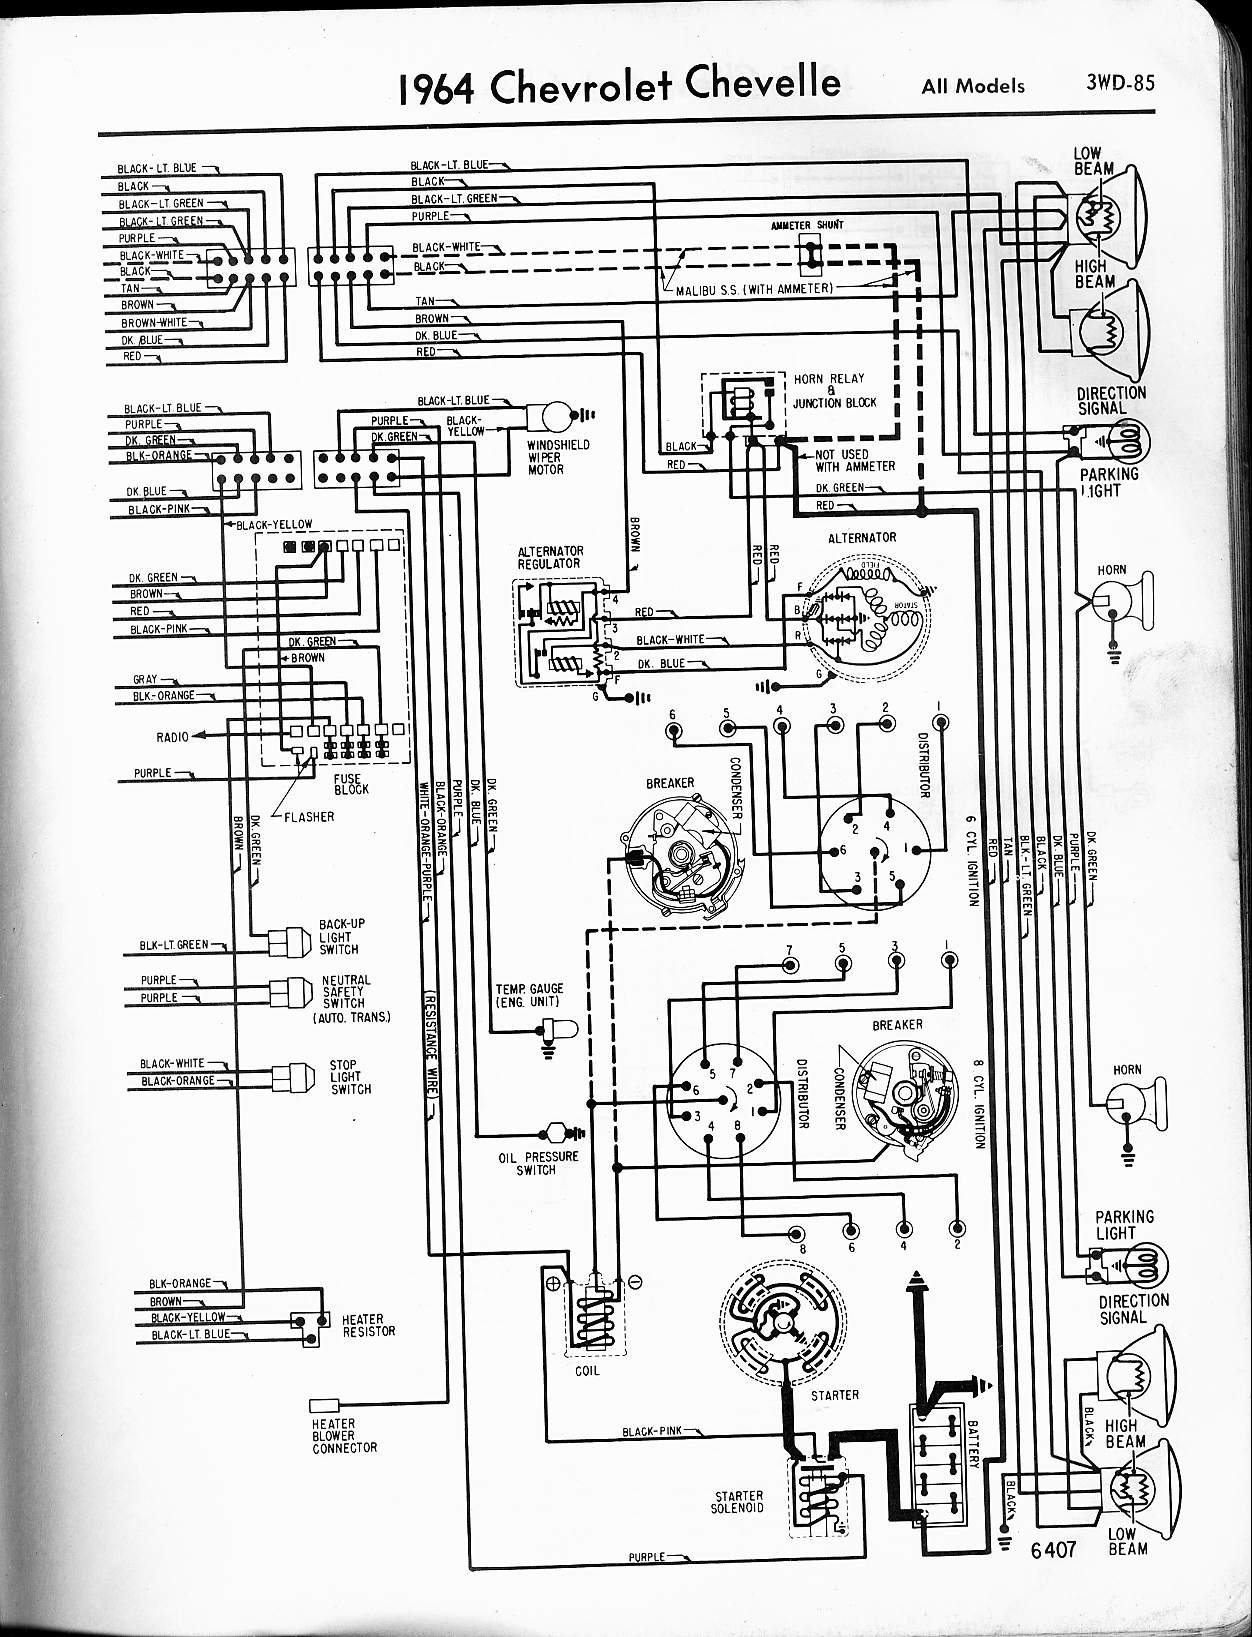 MWireChev64_3WD 085 chevy diagrams Ford Alternator Wiring Diagram at bakdesigns.co